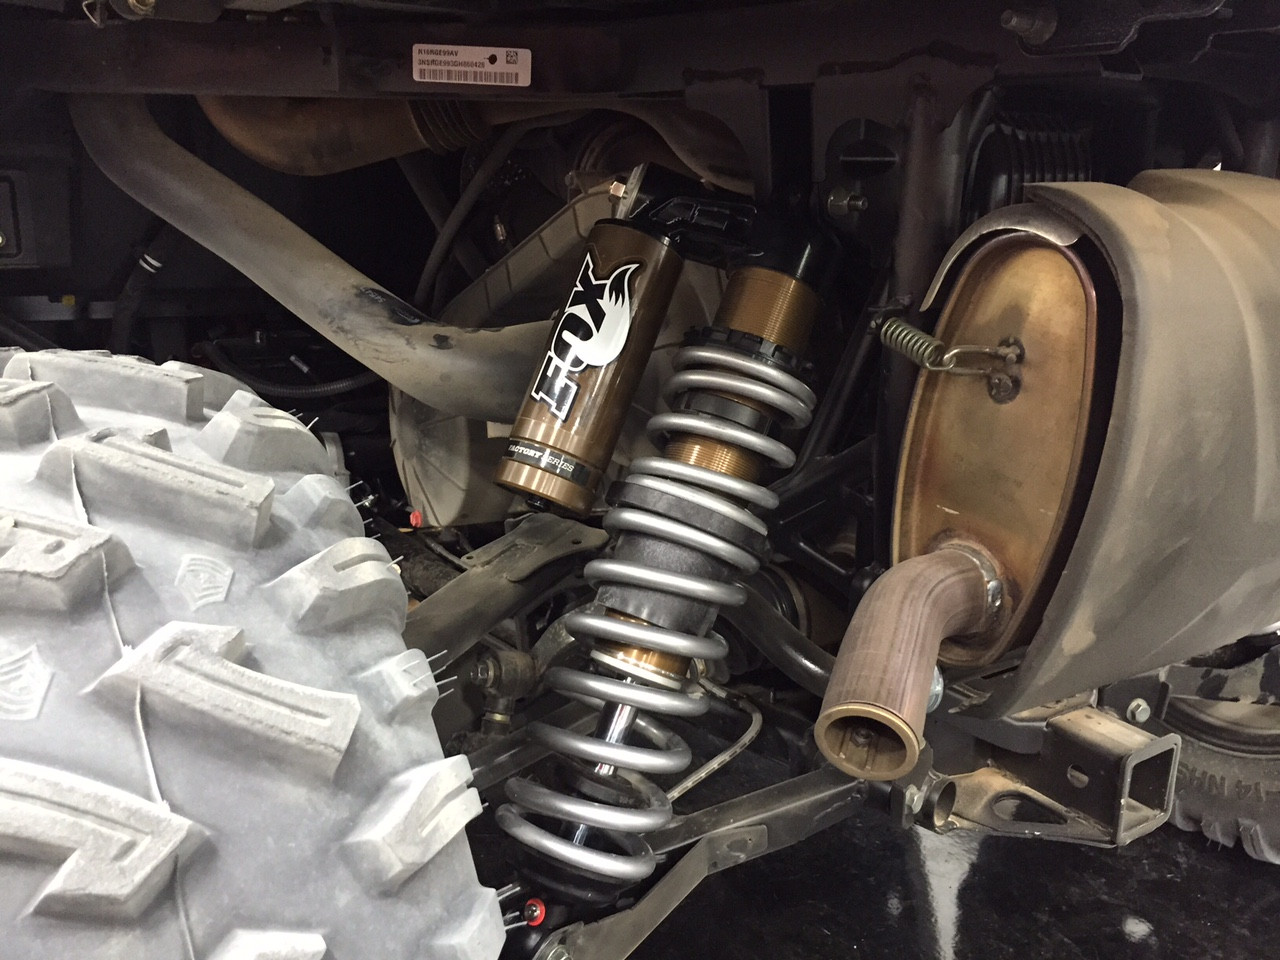 Rear shock installed with dual rate springs